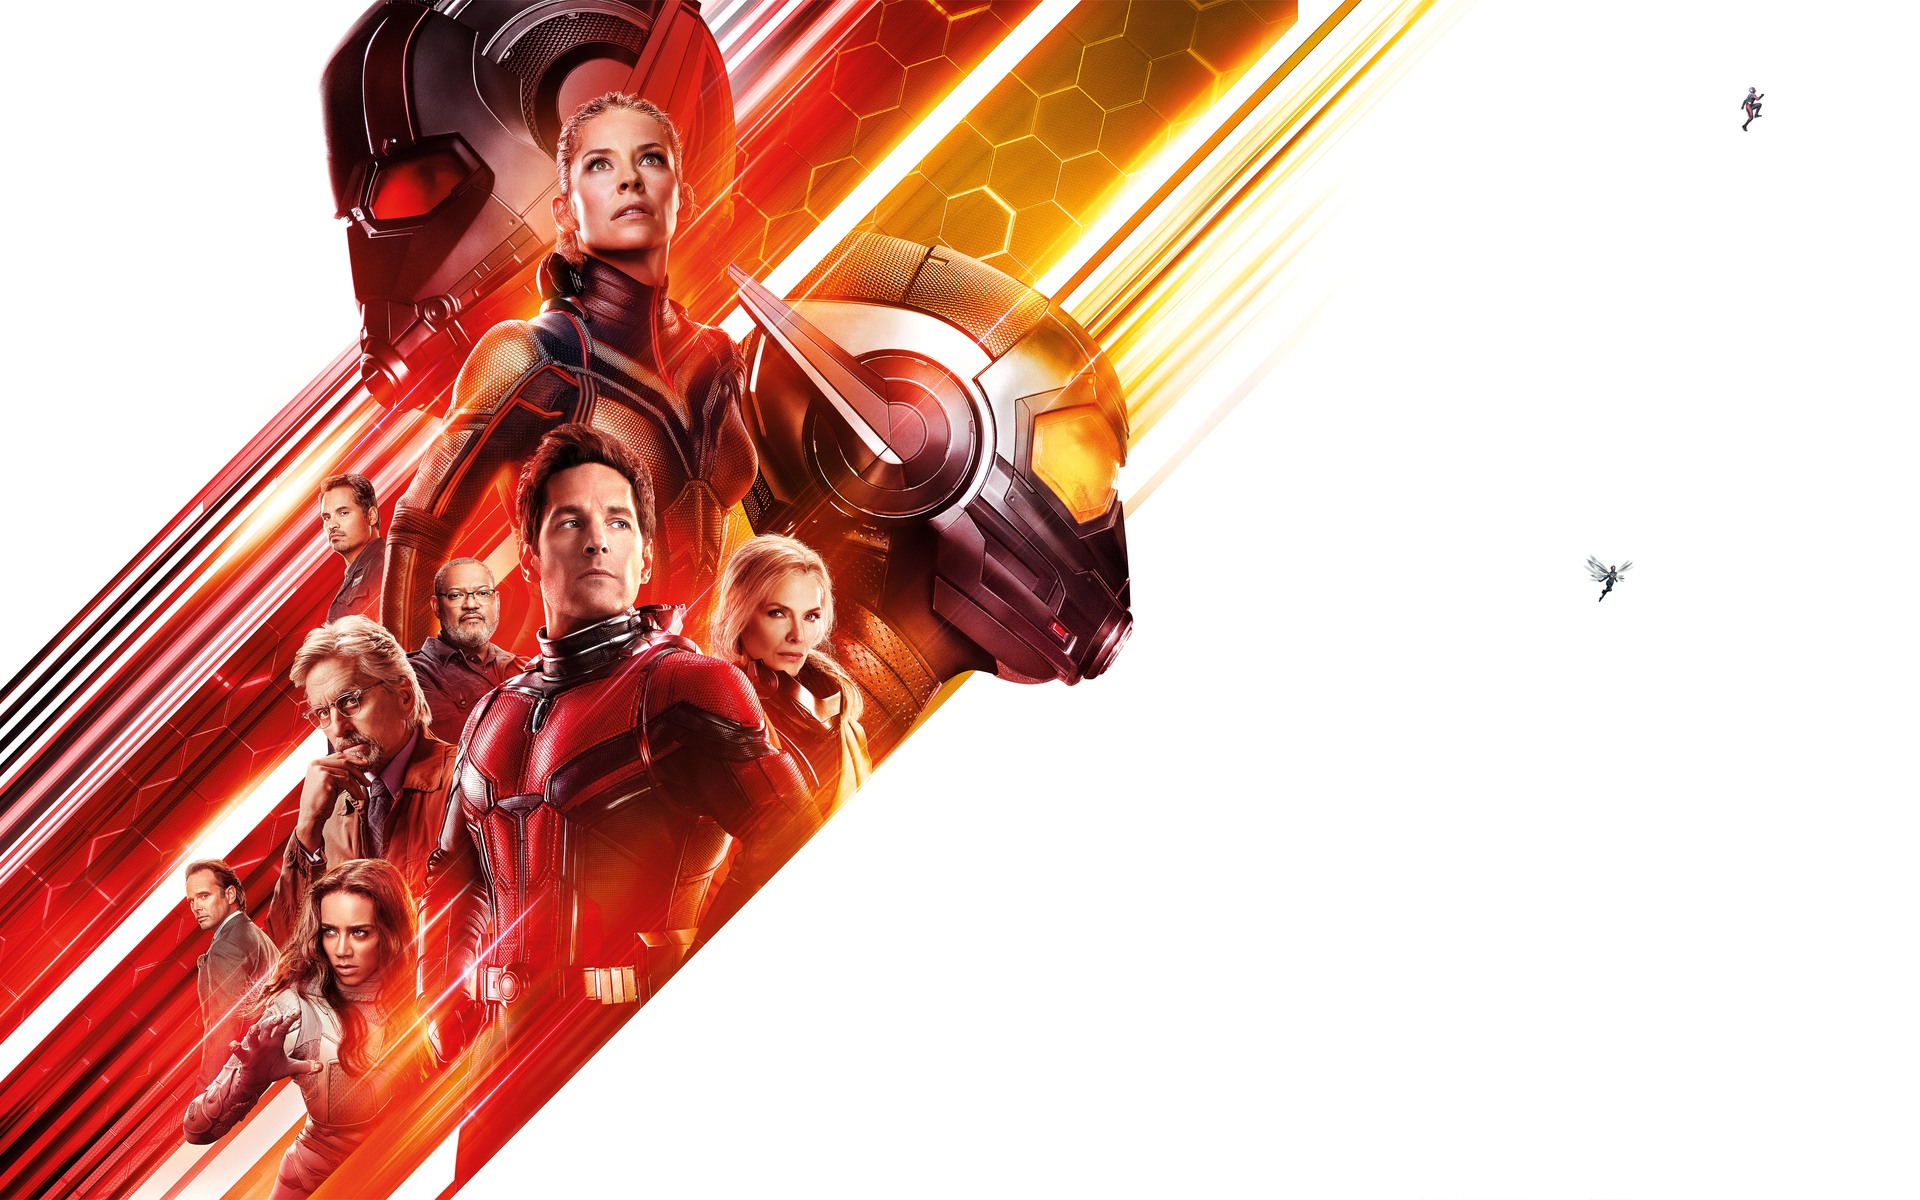 ant-man-and-the-wasp-12k-24.jpg